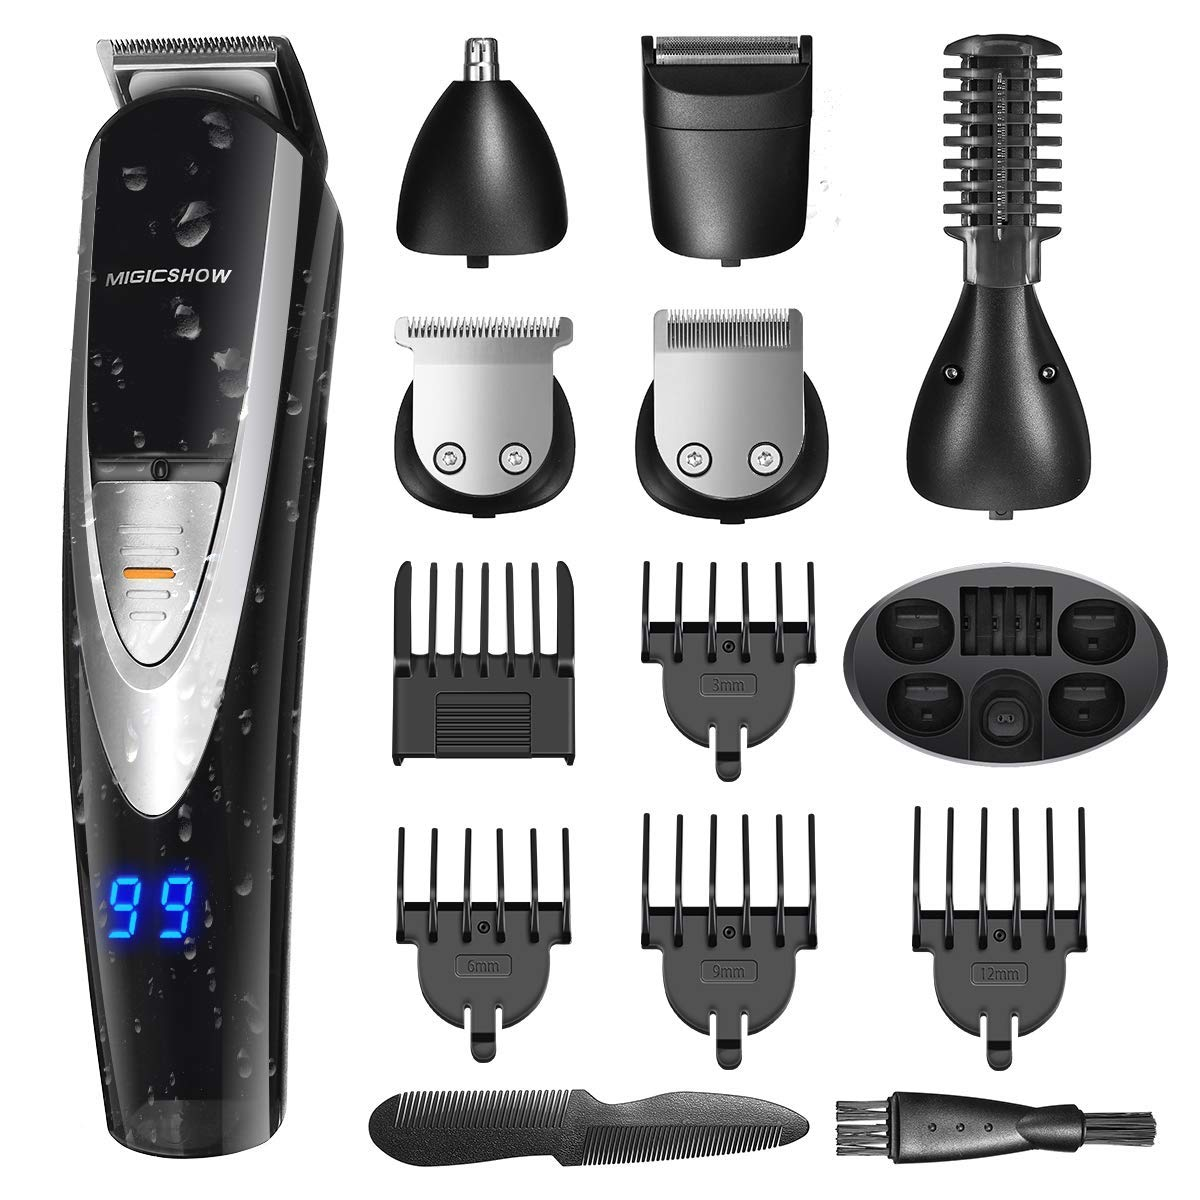 12-in-1 Men's Electric Beard Trimmer Kit, Multi-Functional Waterproof Trimmer Grooming Kit